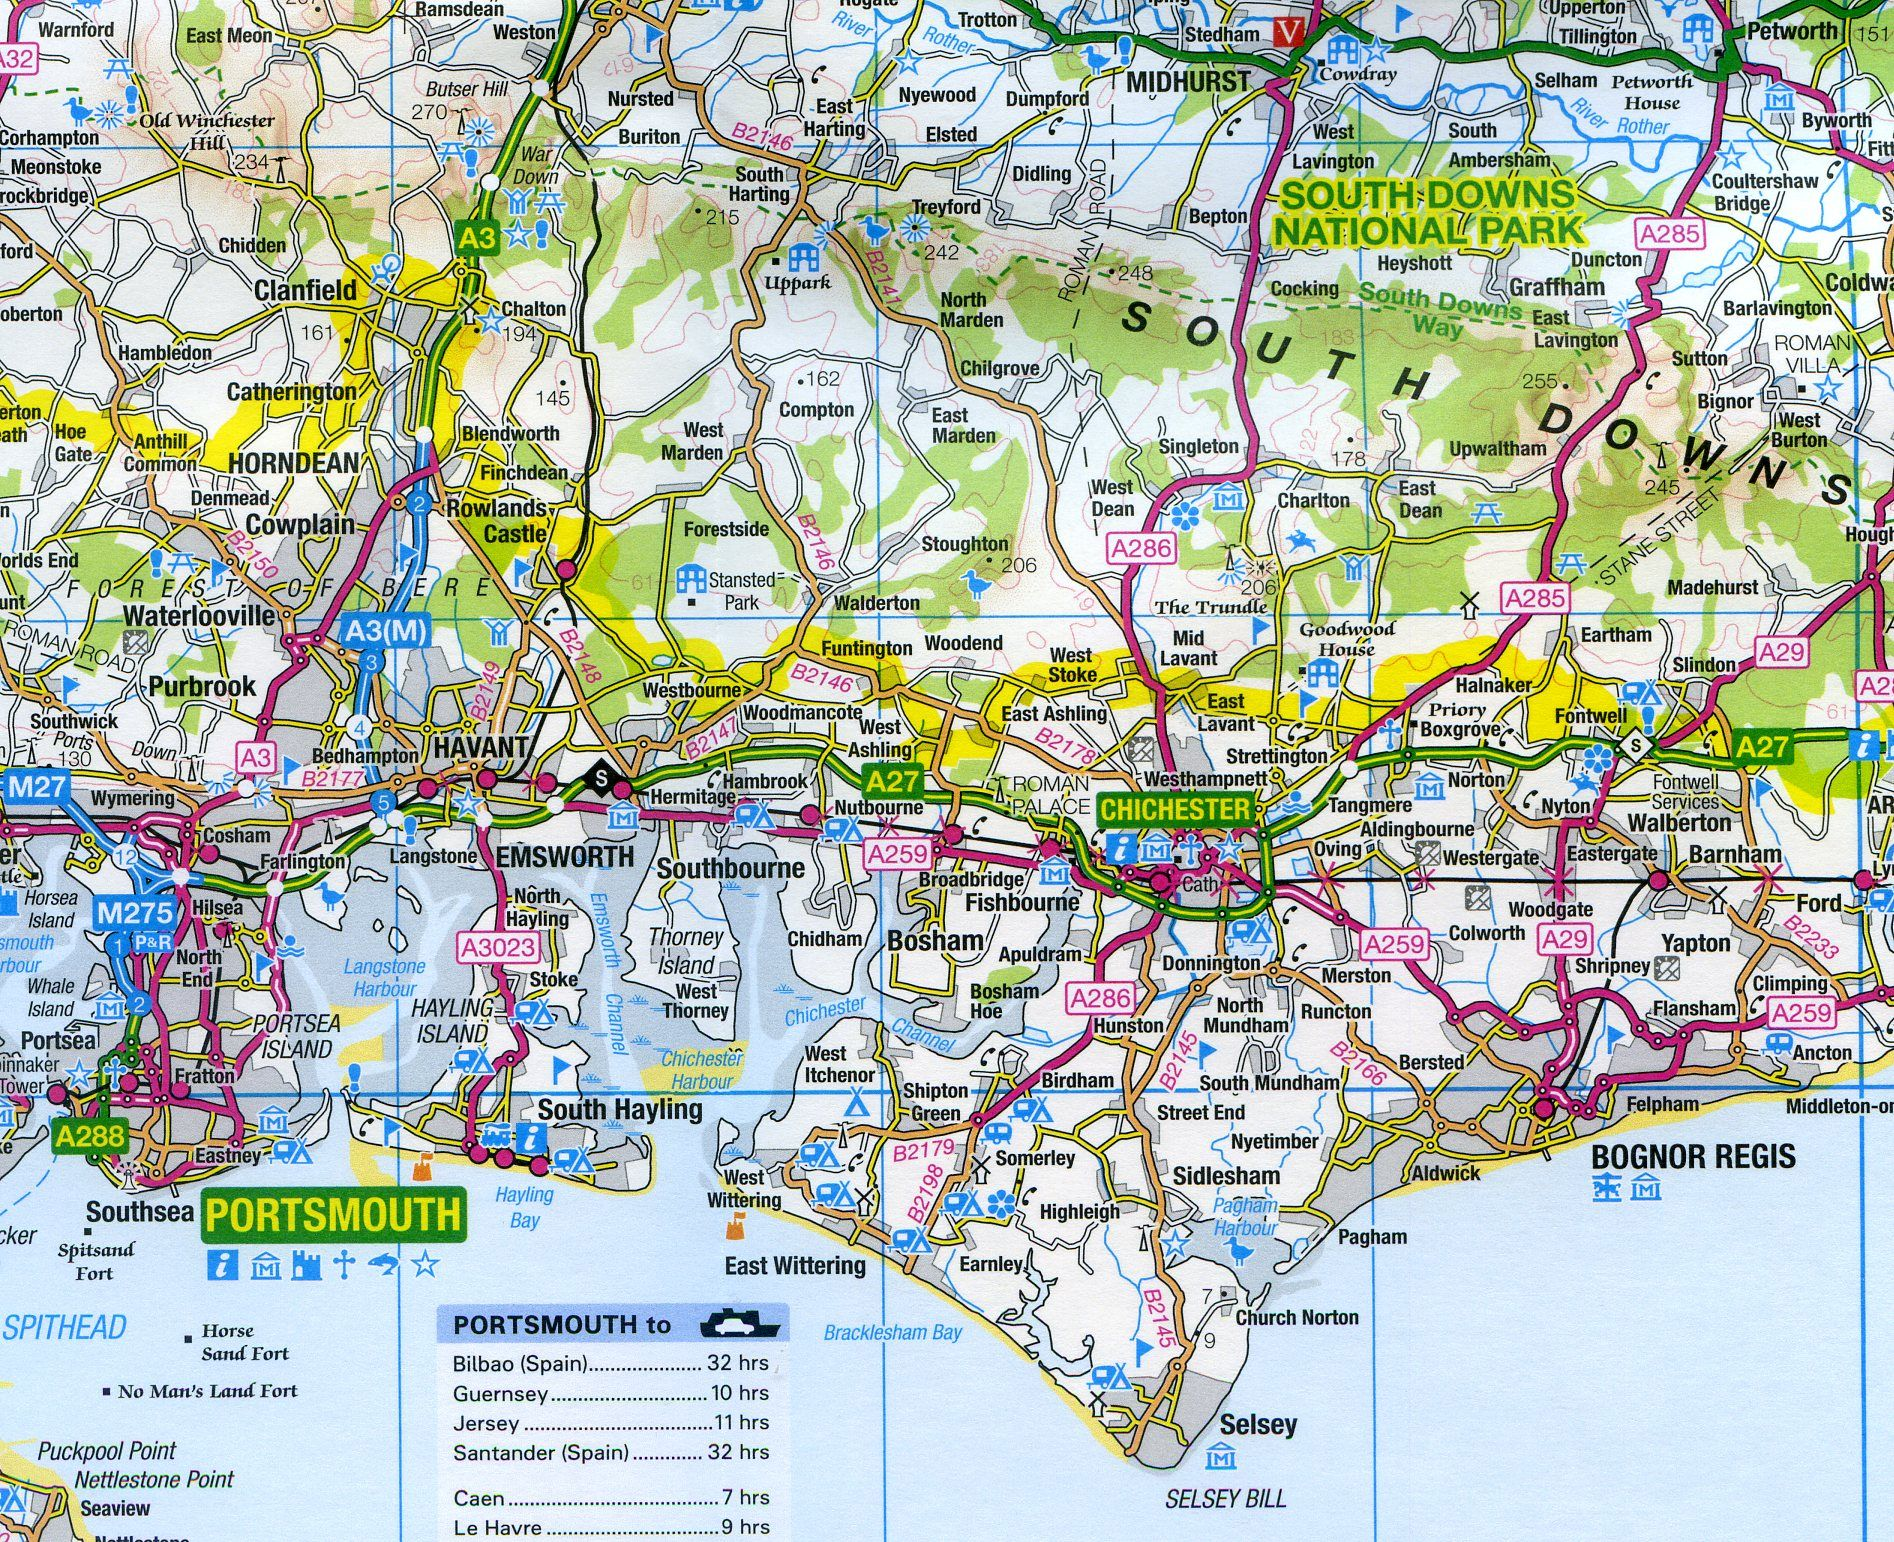 Southeast USA Map Travel Maps Route Maps Mapscom Map East Coast - Interstate highway map southeastern us